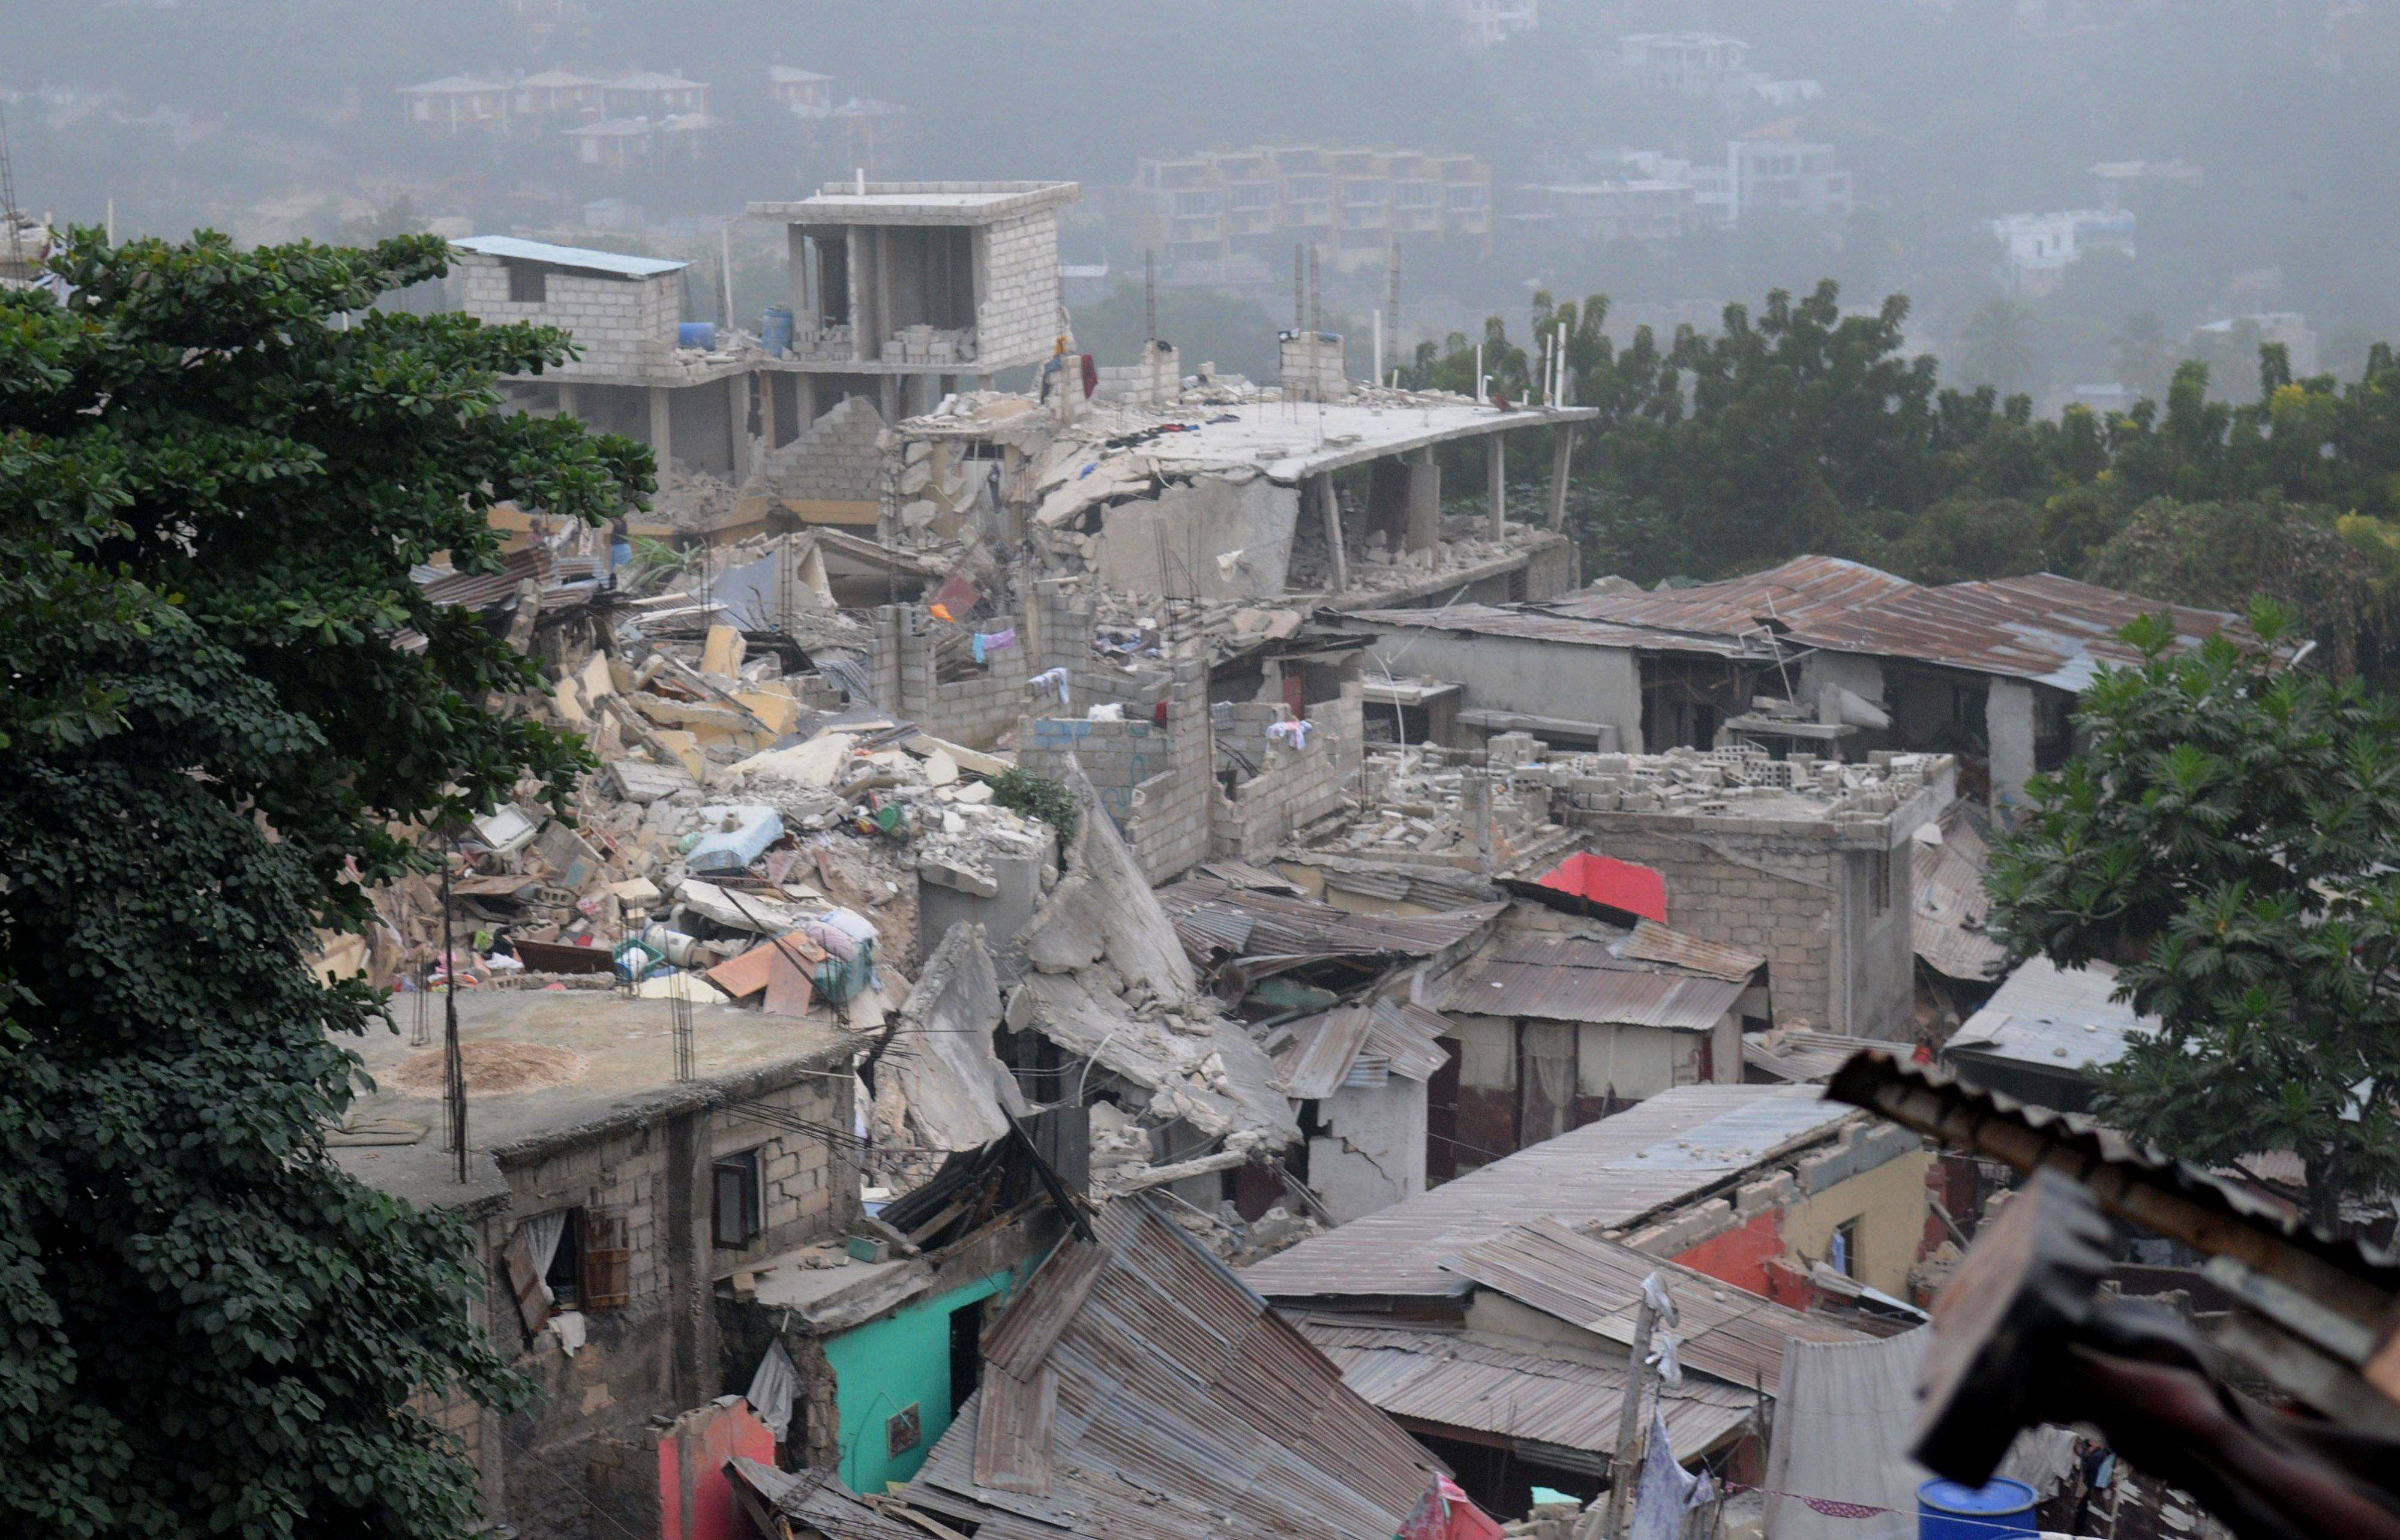 Homes affected by an earthquake are seen in Port-au-Prince, Haiti, Wednesday, Jan. 13, 2010.